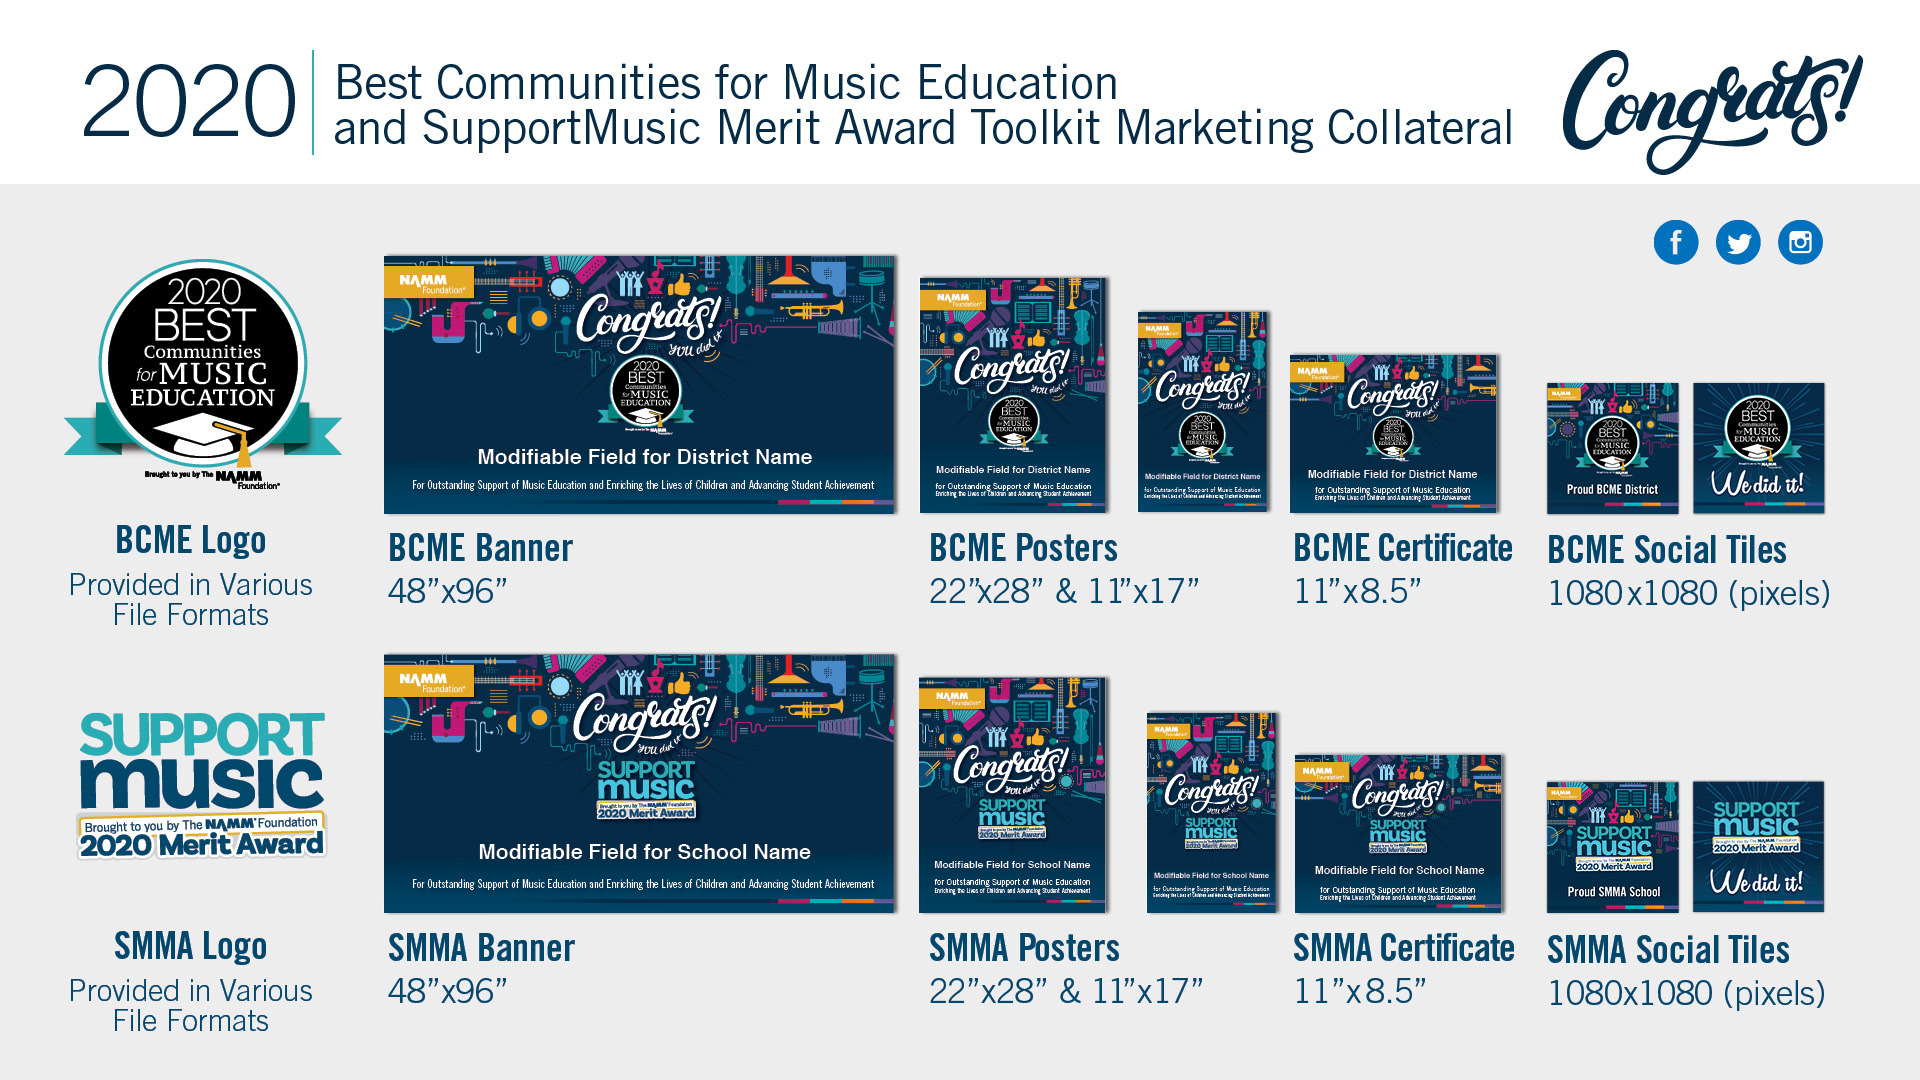 Best Communities for Music Education Promotional Toolkit image